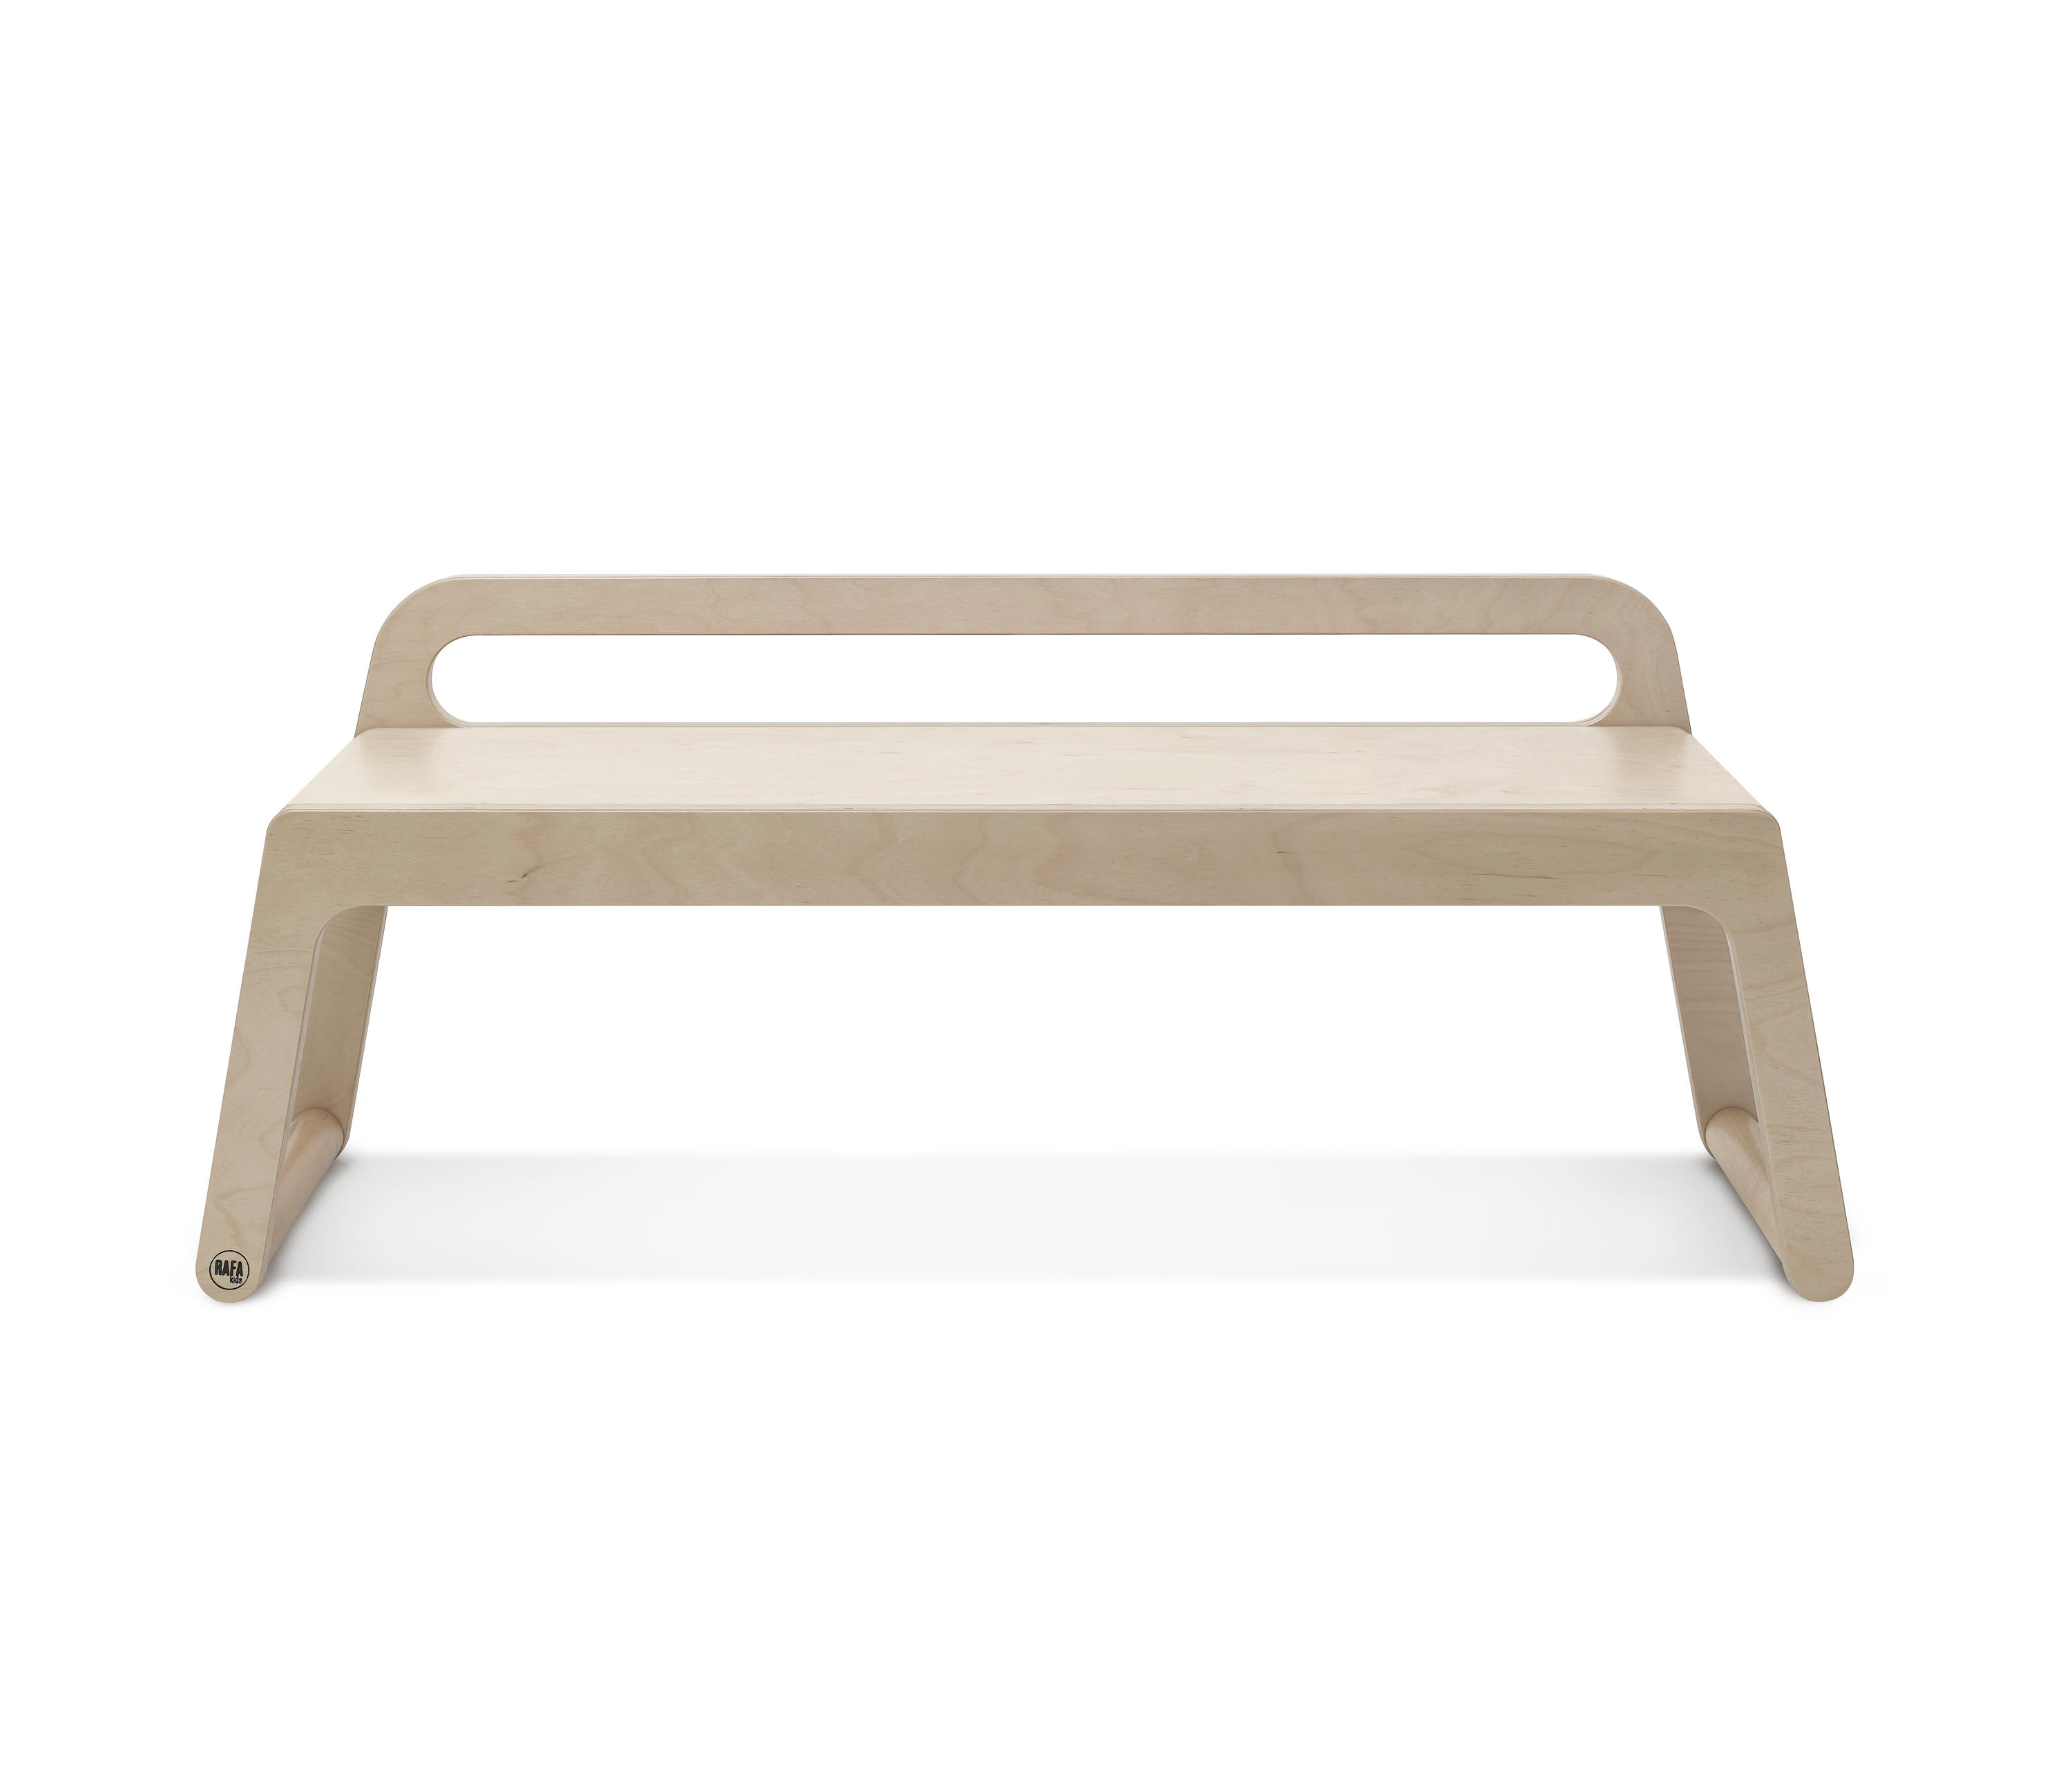 Bb120 Bench Natural Benches From Rafa Kids Architonic